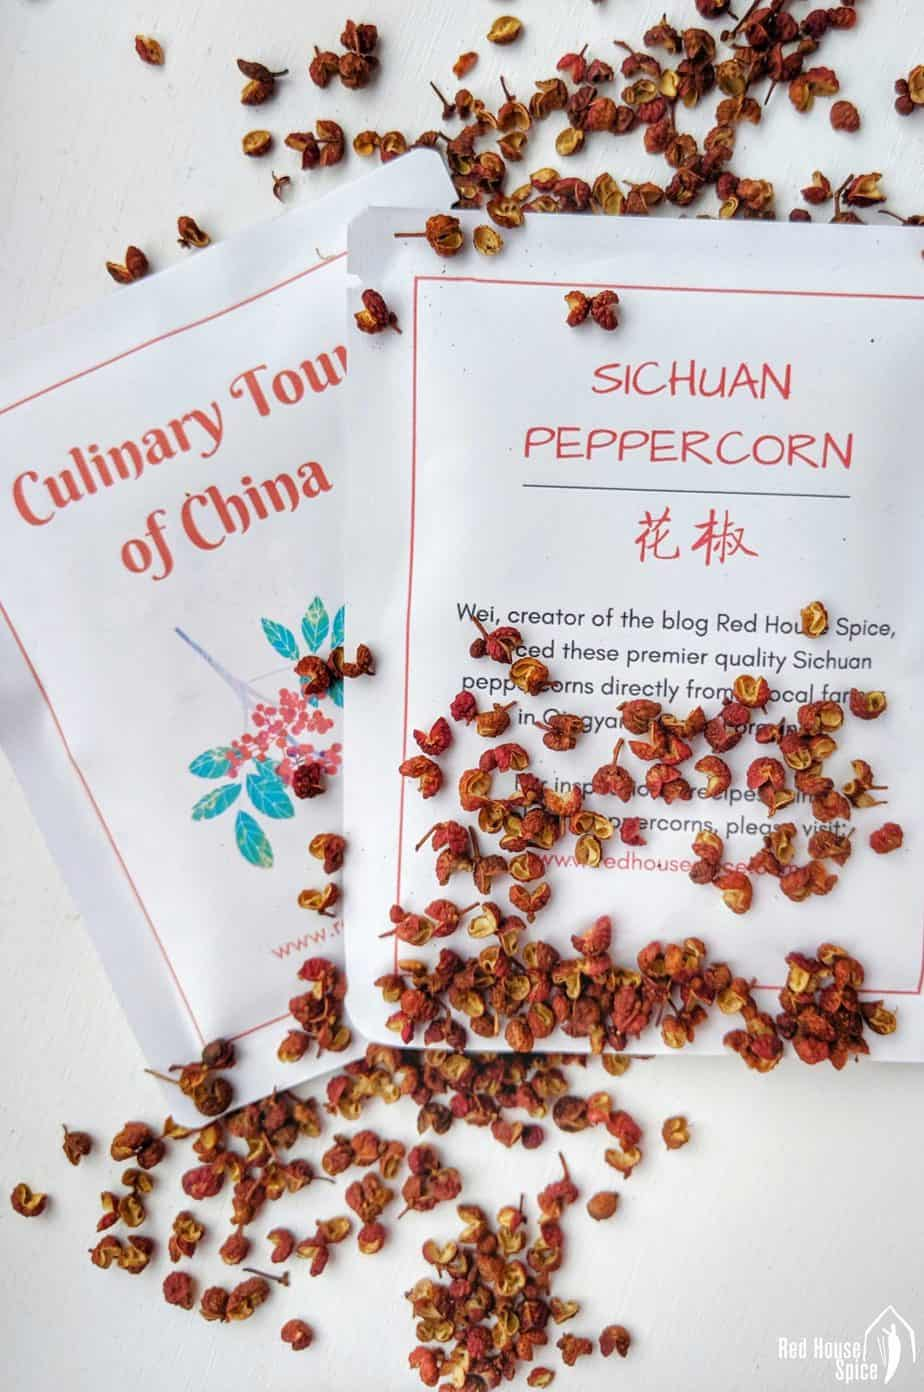 Two sachets and some loose Sichuan pepper